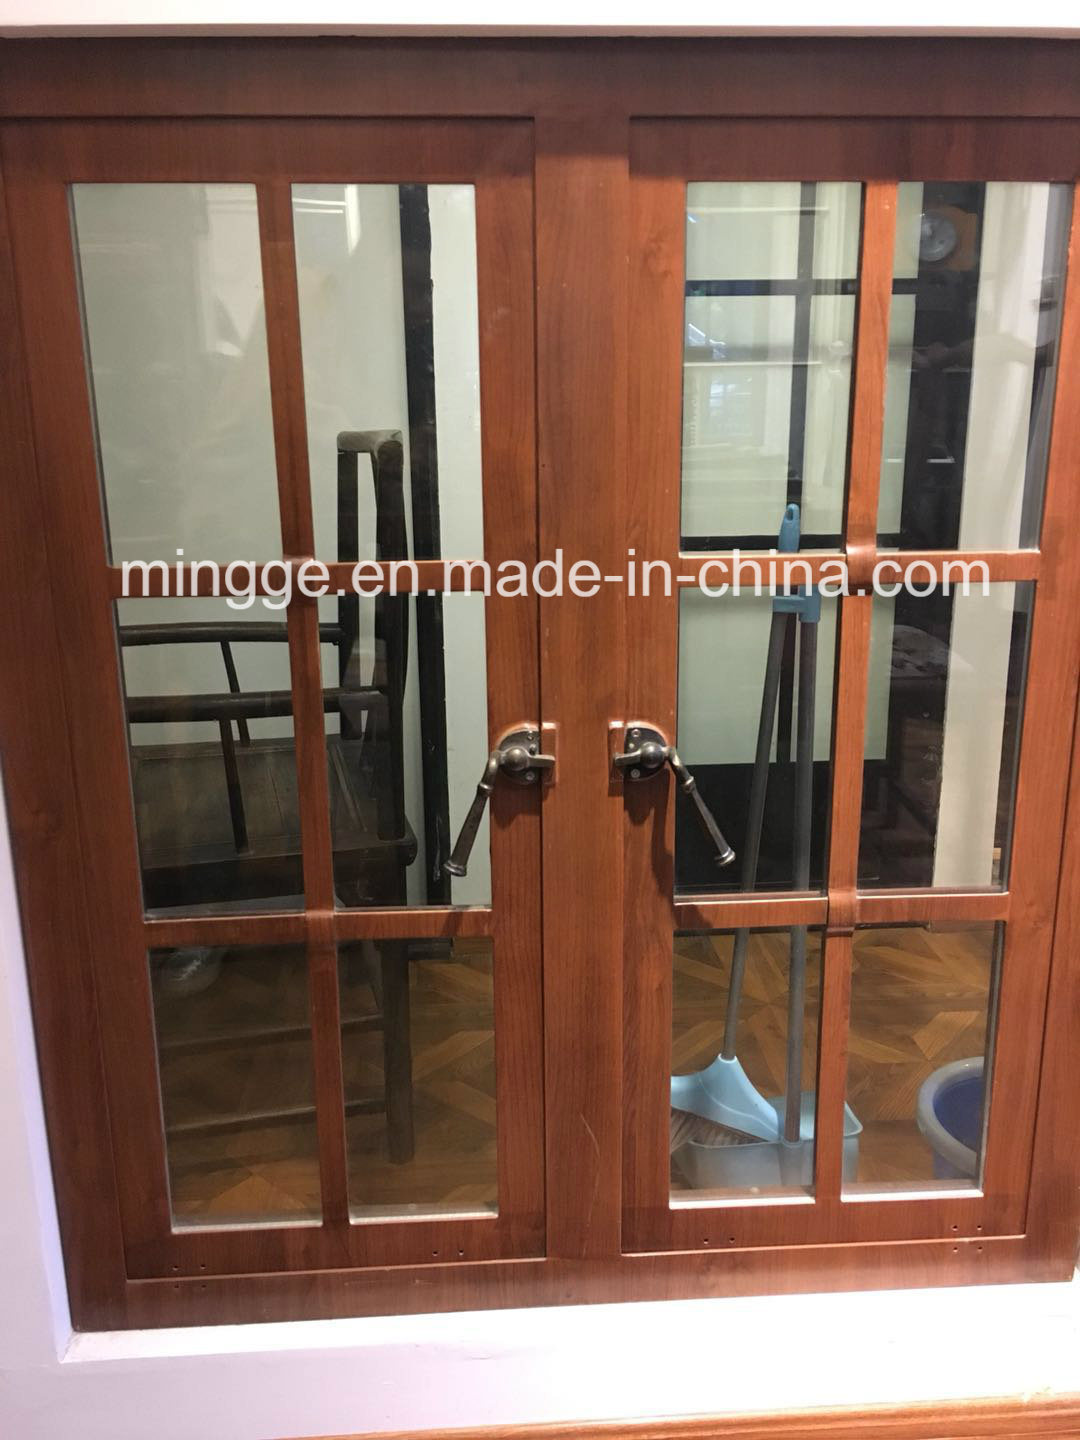 China Stainless Steel Window Grill Design Vintage Windows China